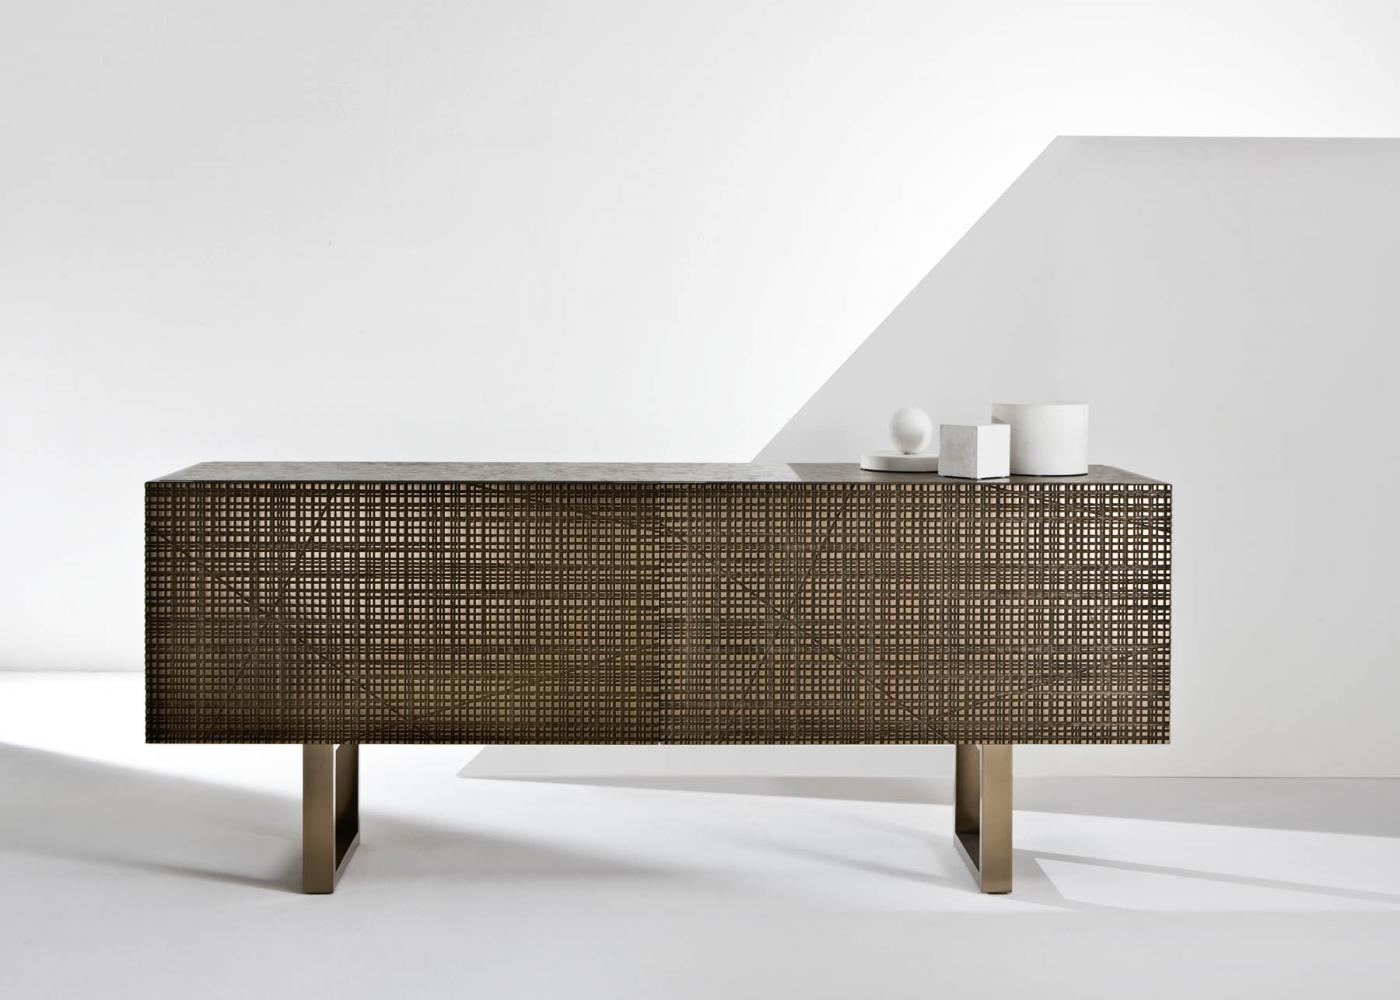 BD 91 is a Low sideboard with Maxima surface in bronze liquid metal finish